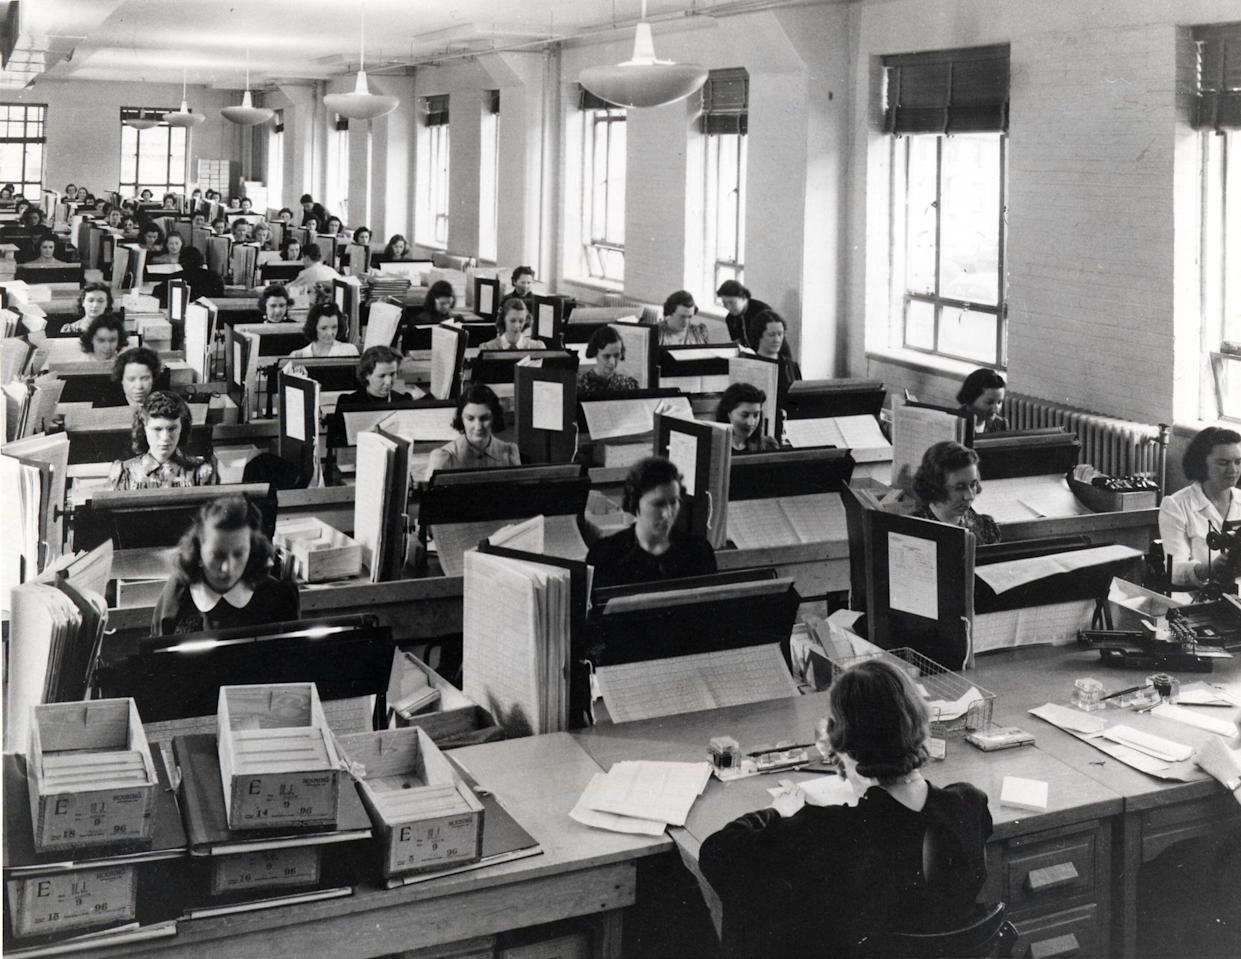 U.S. Census Bureau tabulators record information from the more than 120,000 enumerators who gathered data for the 1940 census. (Photo: National Archives and Records Administration/AP)